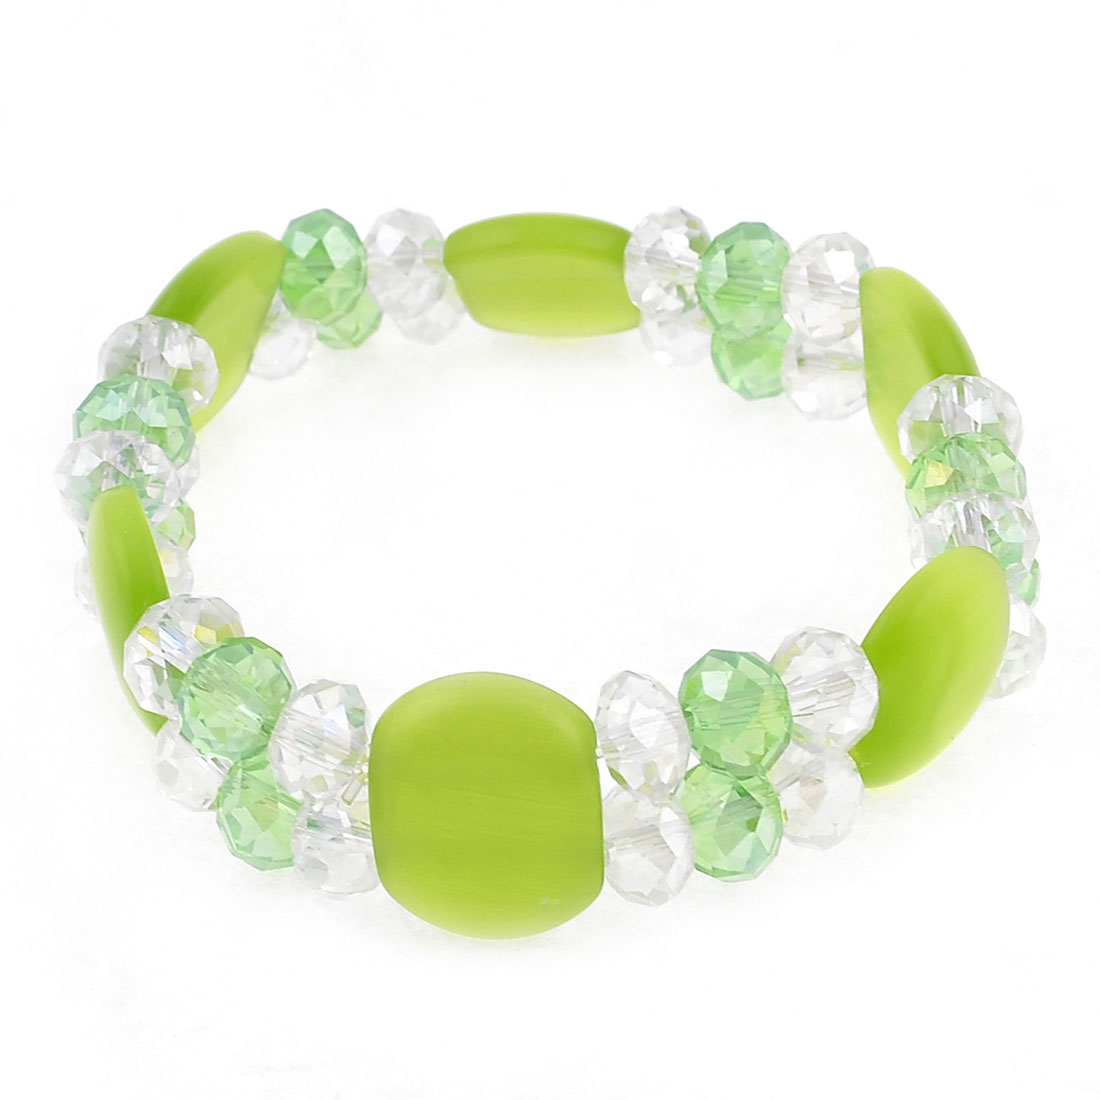 "Light Green Clear Dual Layered Rectangle Beads Crystal Bracelet 0.6"" Width"